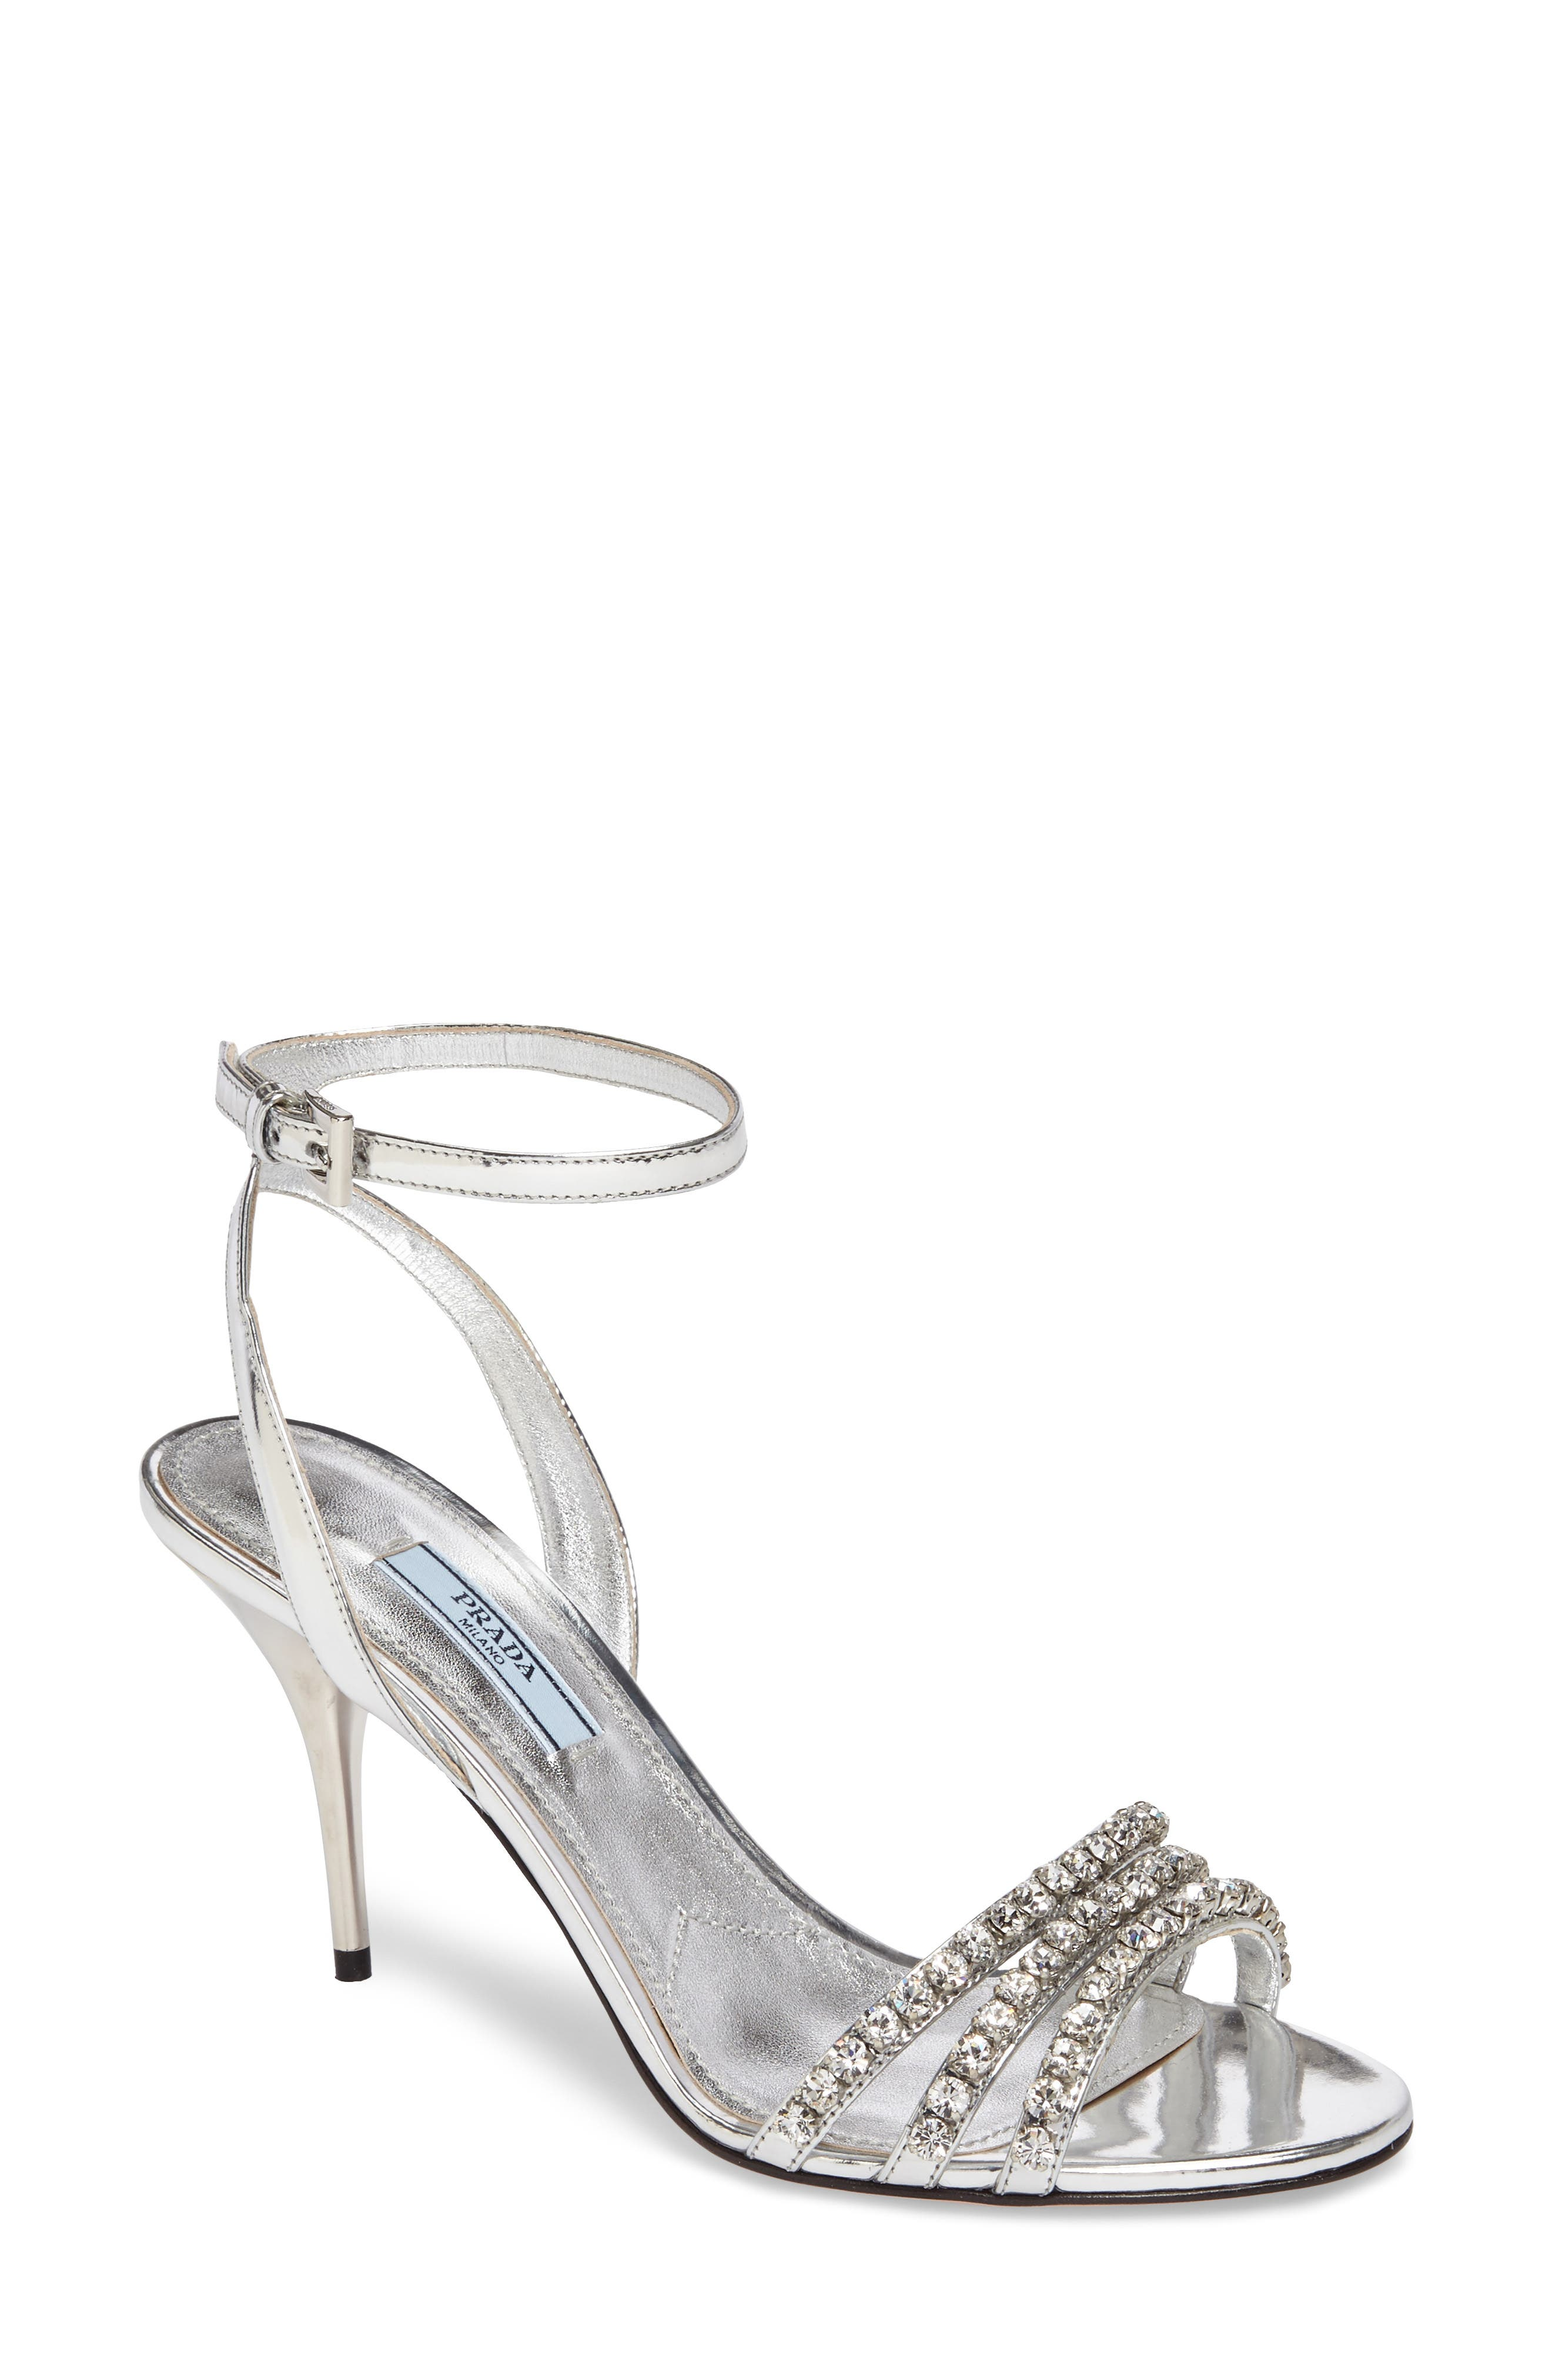 Jeweled Metallic Sandal,                         Main,                         color, Silver